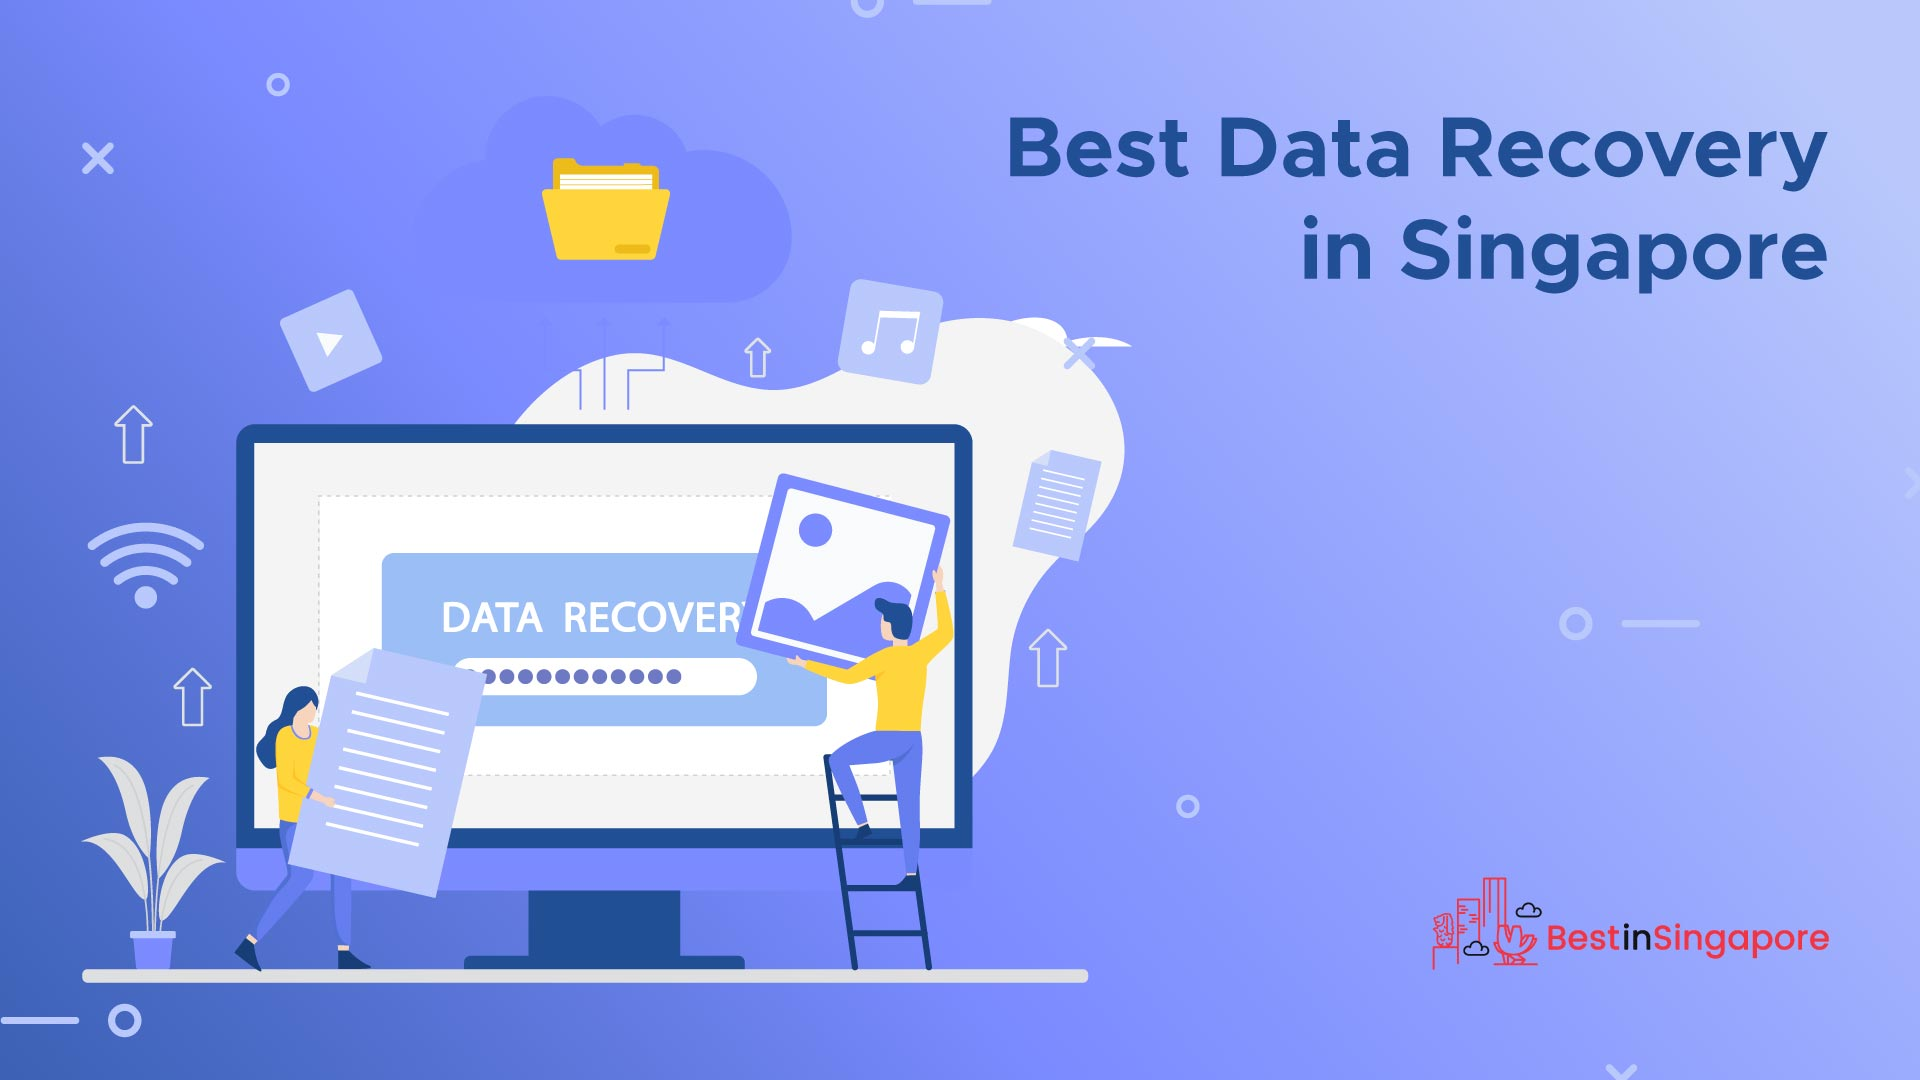 Best Data Recovery in Singapore